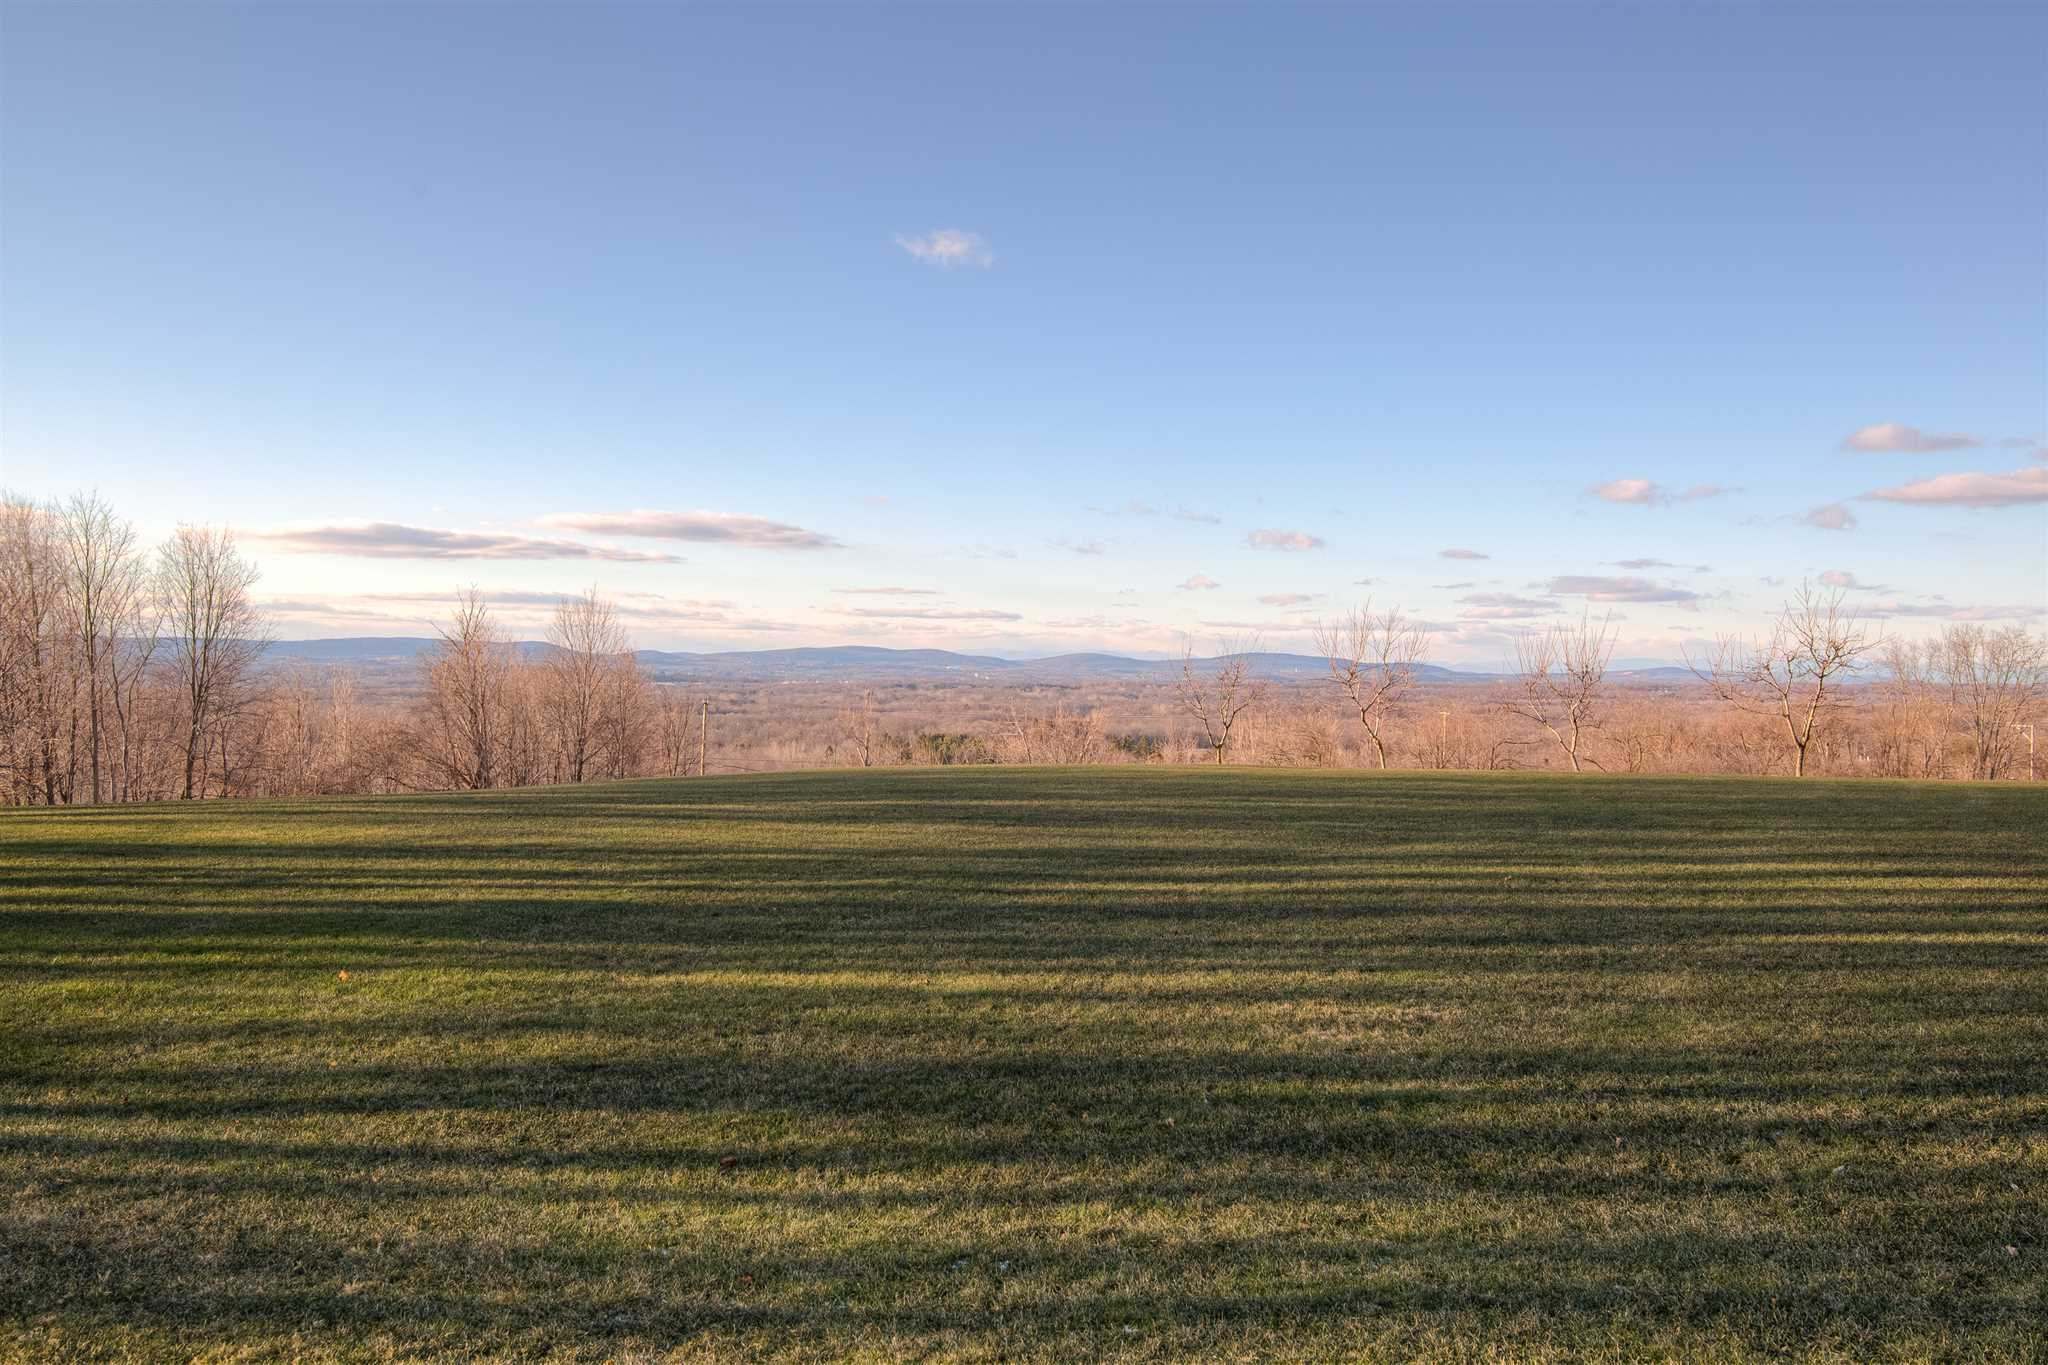 195 All Angels Hill - Lo Rd, Wappinger, NY - USA (photo 3)